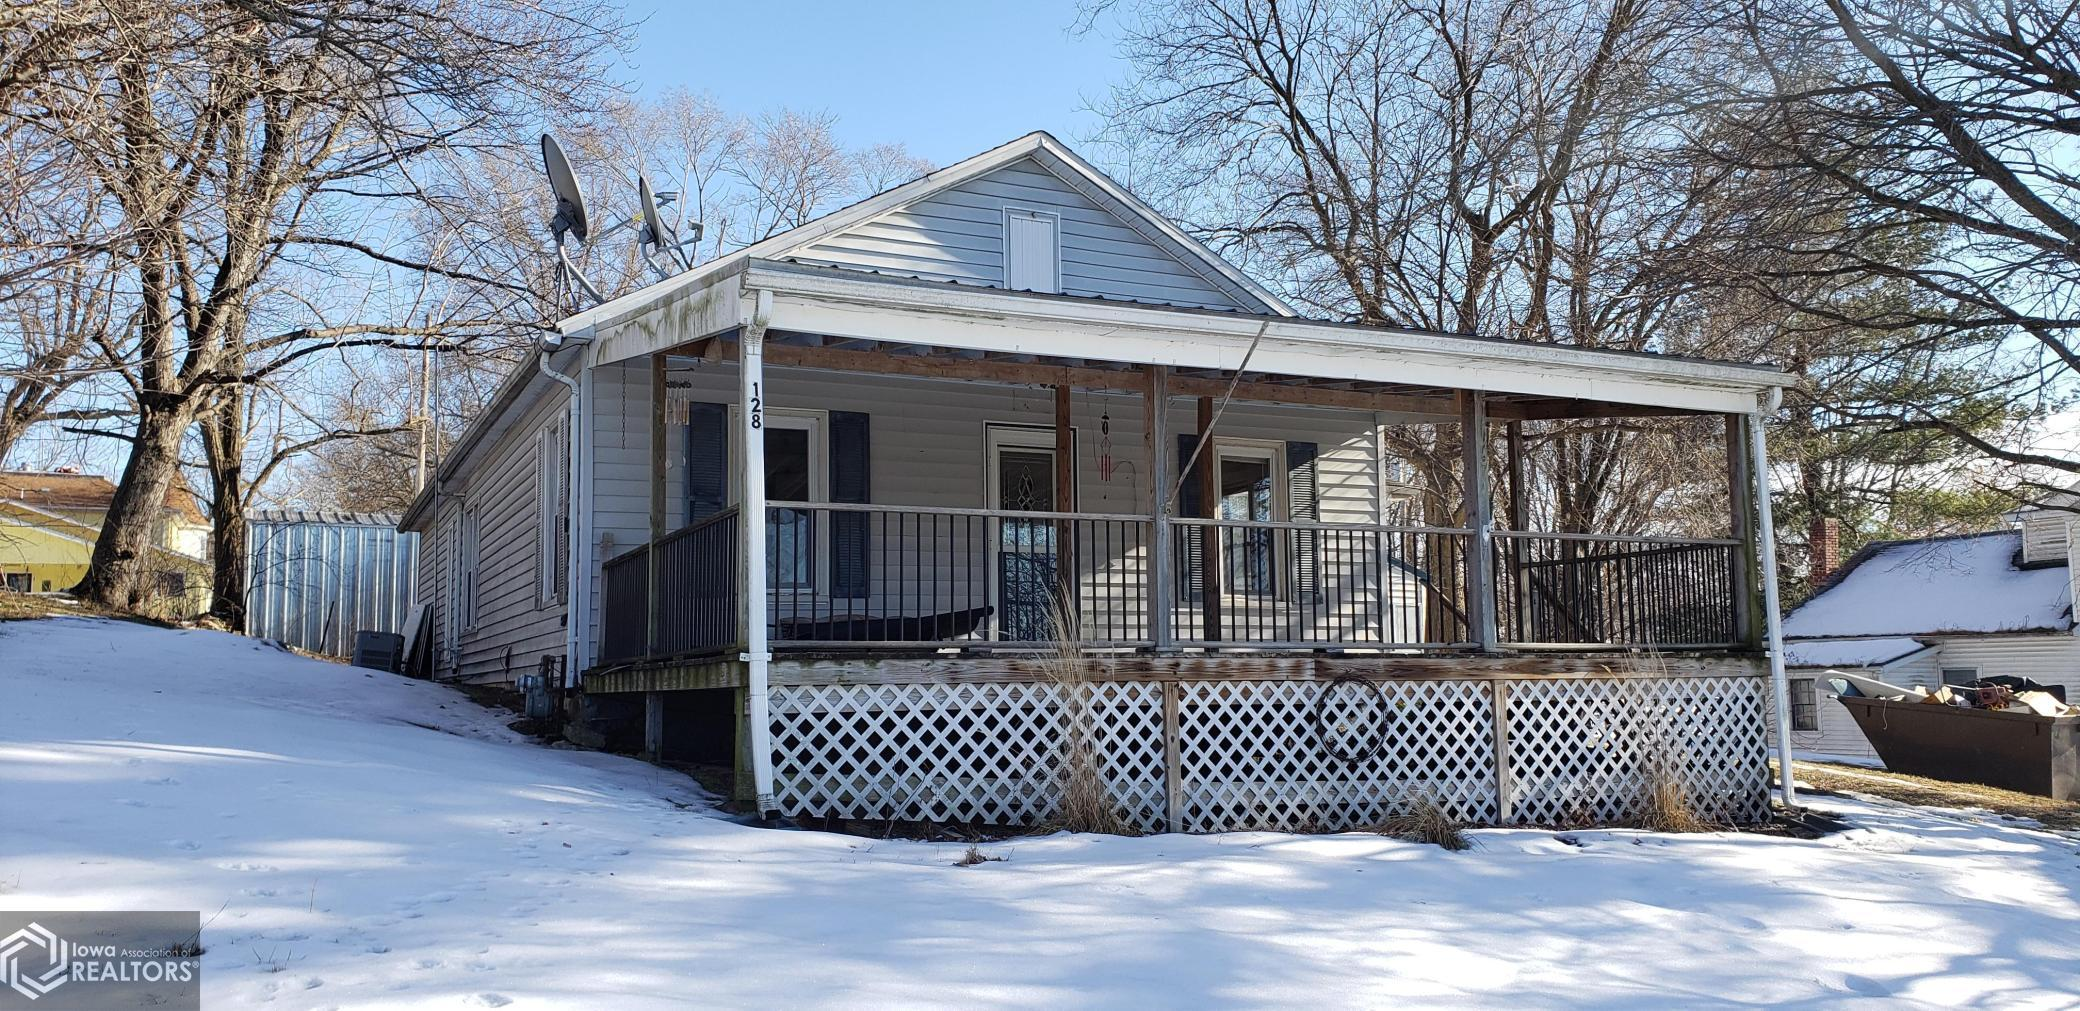 128 2nd St, Oquawka, Illinois 61469, 3 Bedrooms Bedrooms, ,1 BathroomBathrooms,Single Family,For Sale,2nd St,5704042